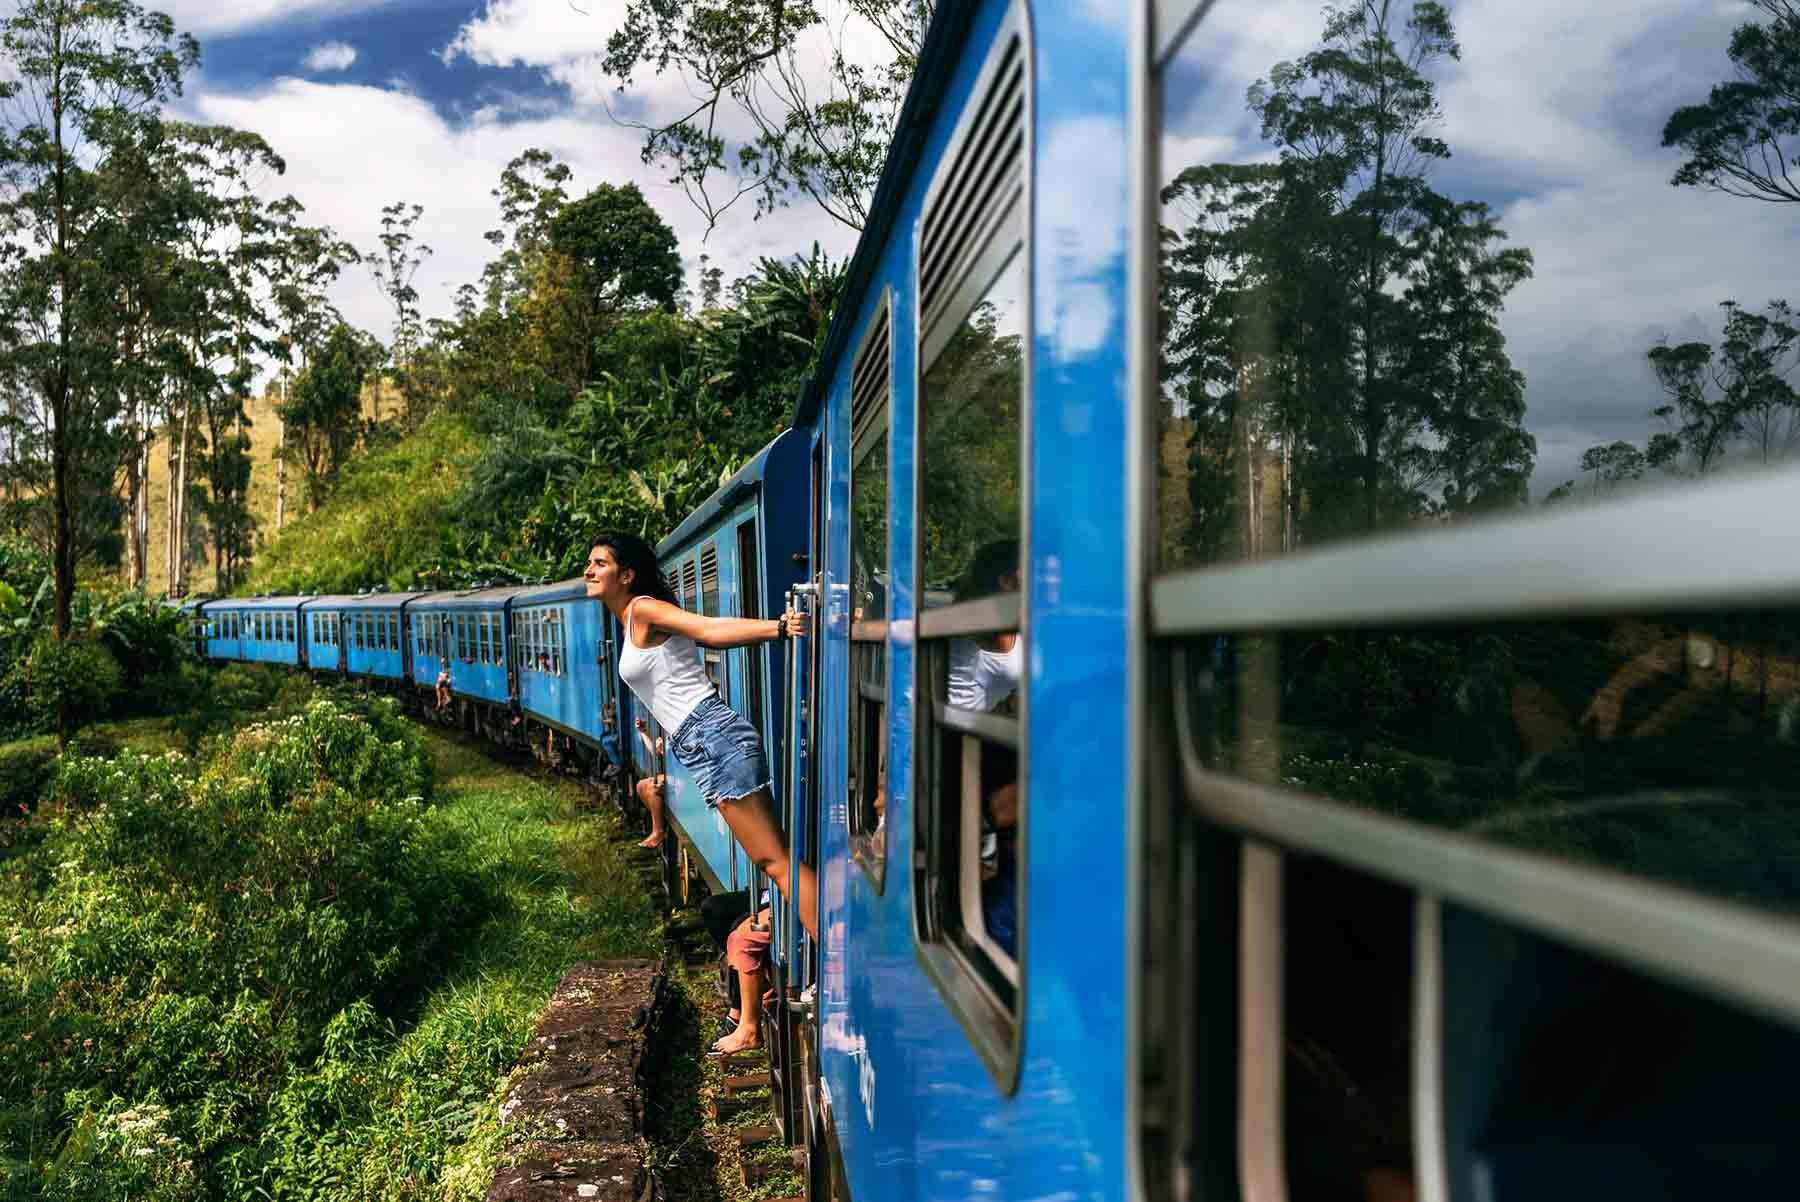 The girl travels by train to beautiful places. Beautiful girl traveling by train among mountains. Travel by train. Travelling to Asia. Trains Sri Lanka. Railway transport. Railway. Transport Asia